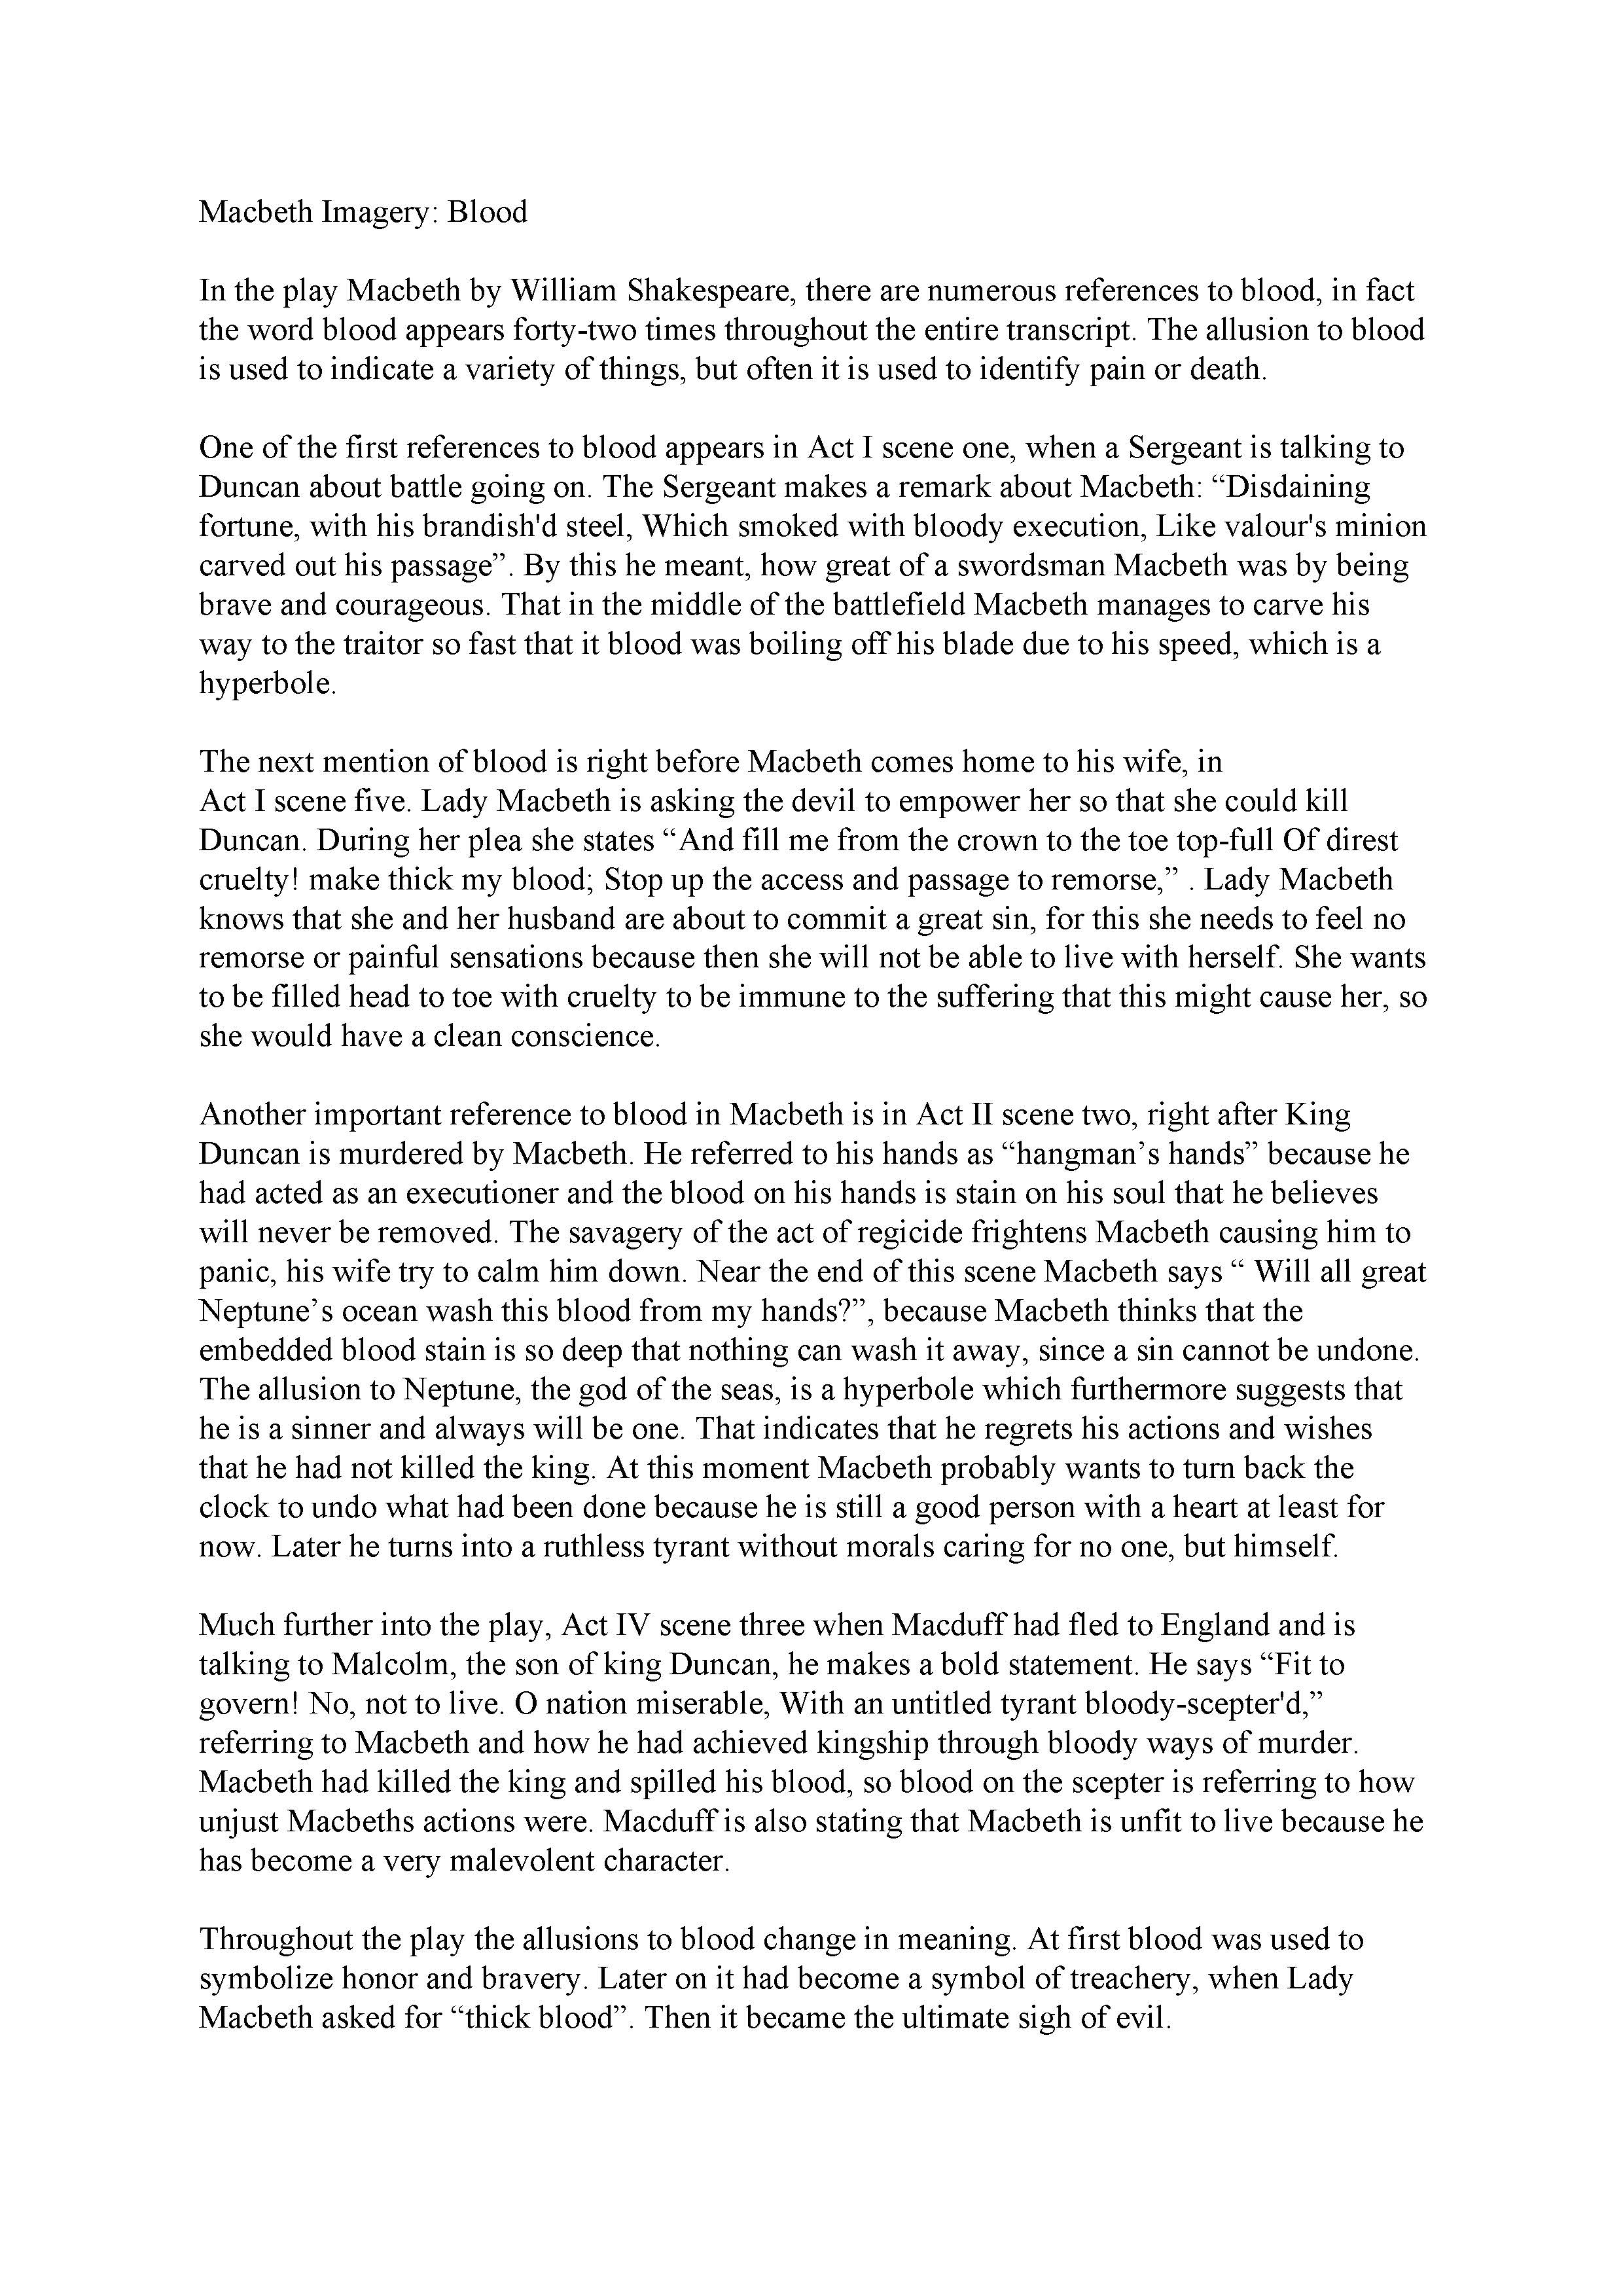 005 Example Of Good Essay Macbeth Rare A Examples Perfect Writing Academic Introduction Research Paper Full